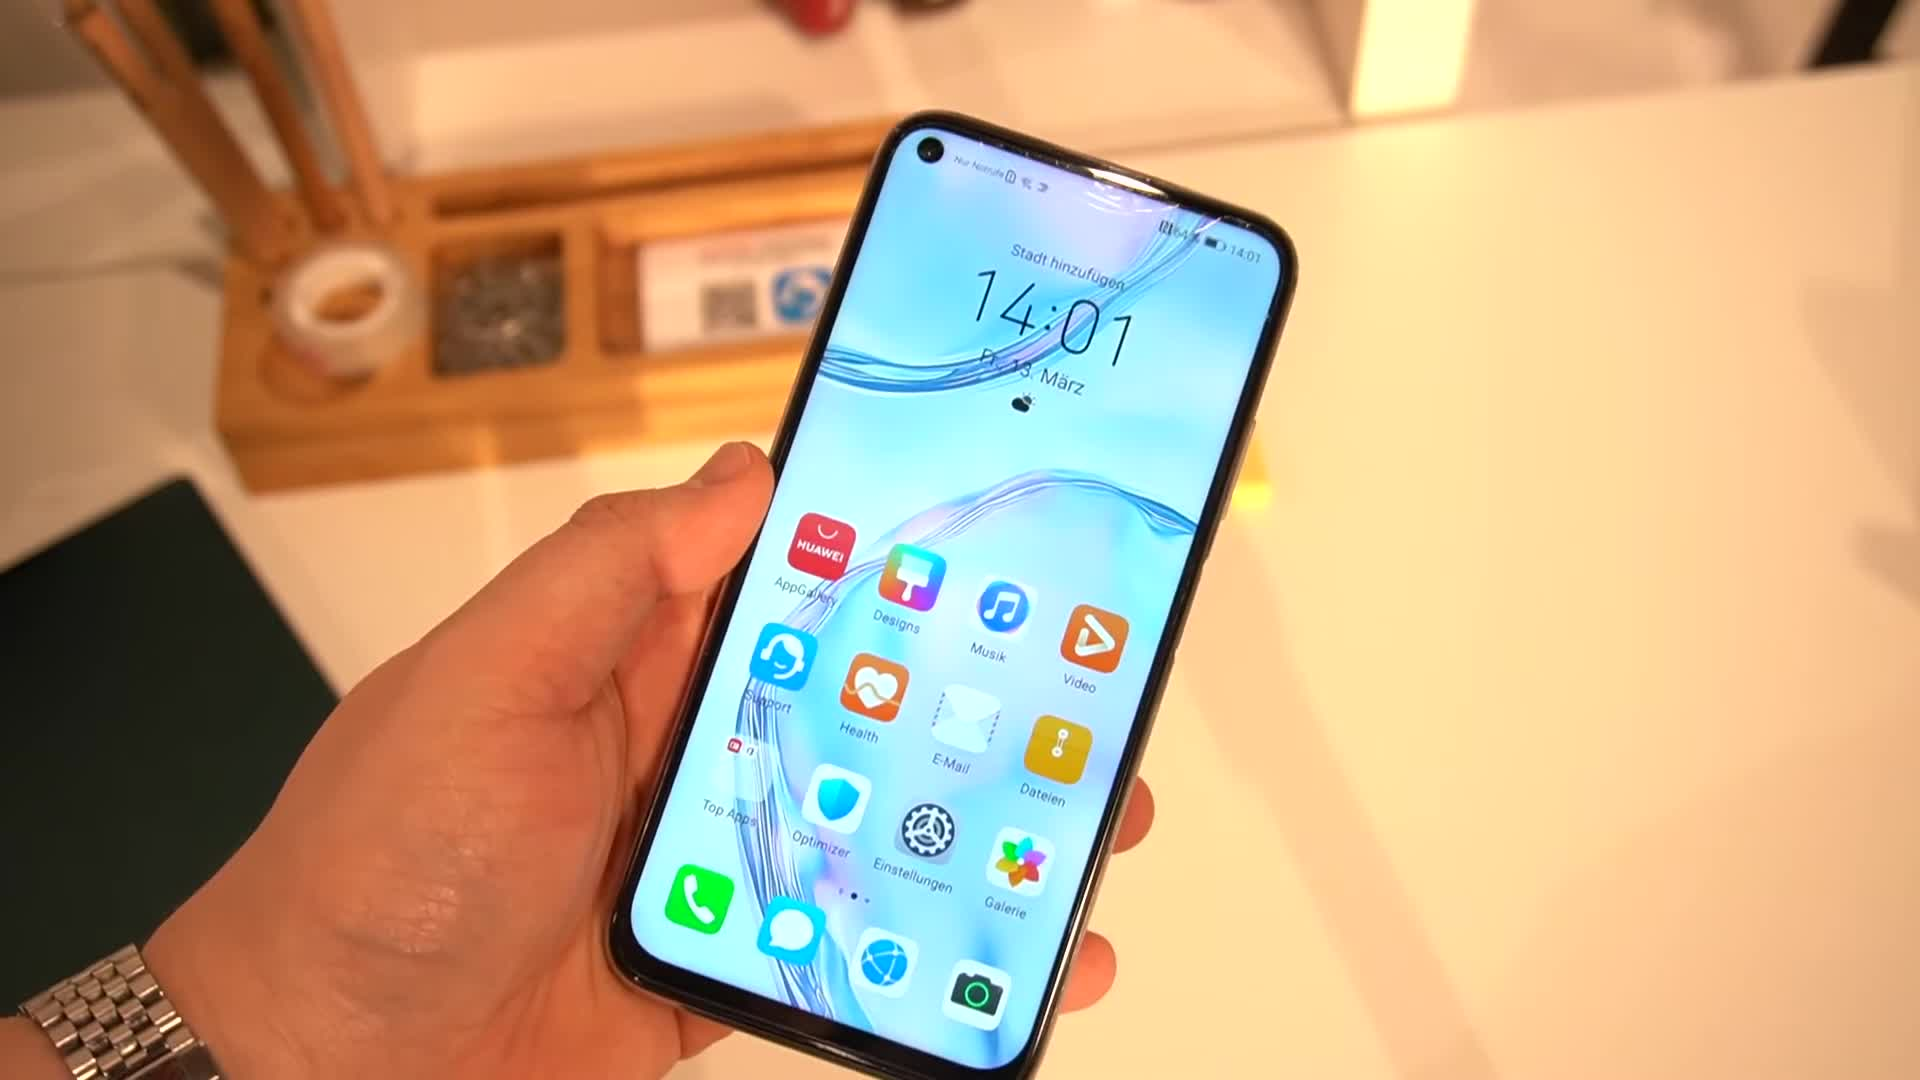 Smartphone, Android, Huawei, Hands-On, Hands on, Android 10, NewGadgets, Johannes Knapp, Huawei P40, Huawei P40 Lite, P40 Lite